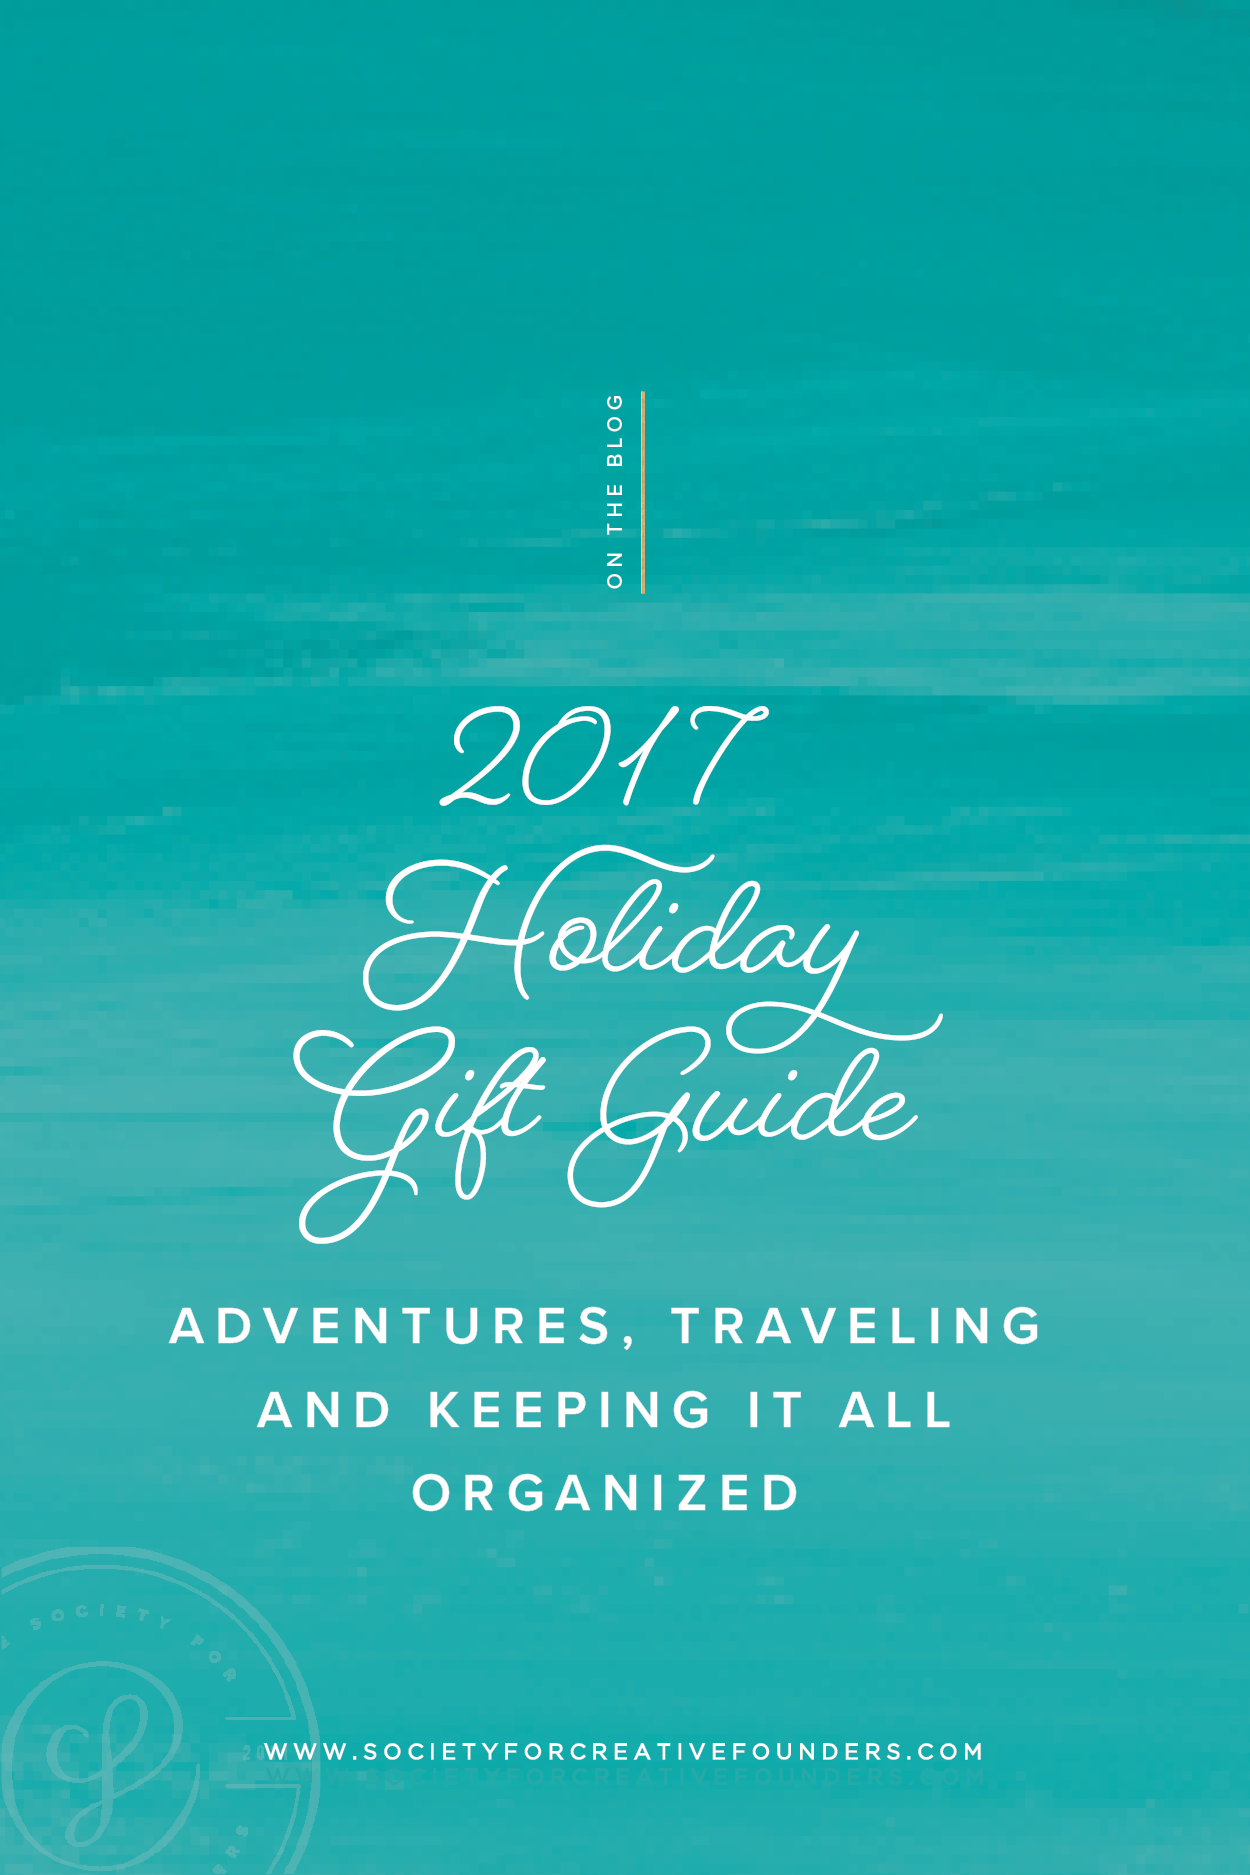 Holiday Gift Guide for Adventurers and Travelers - Society for Creative Founders